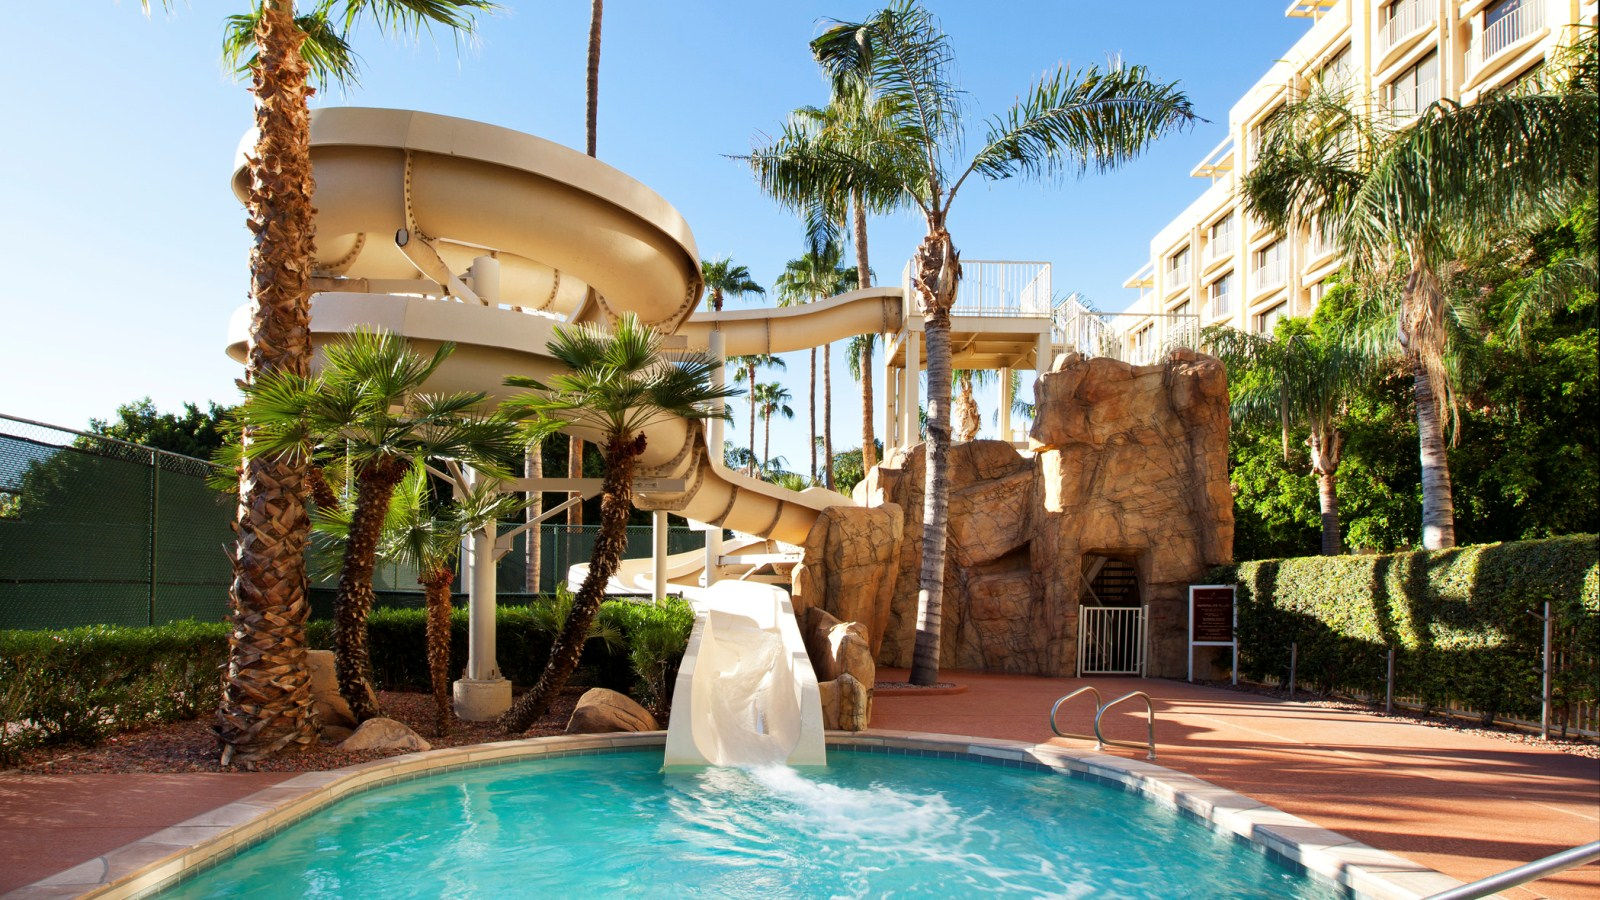 Sheraton Crescent Hotel - Water Slide